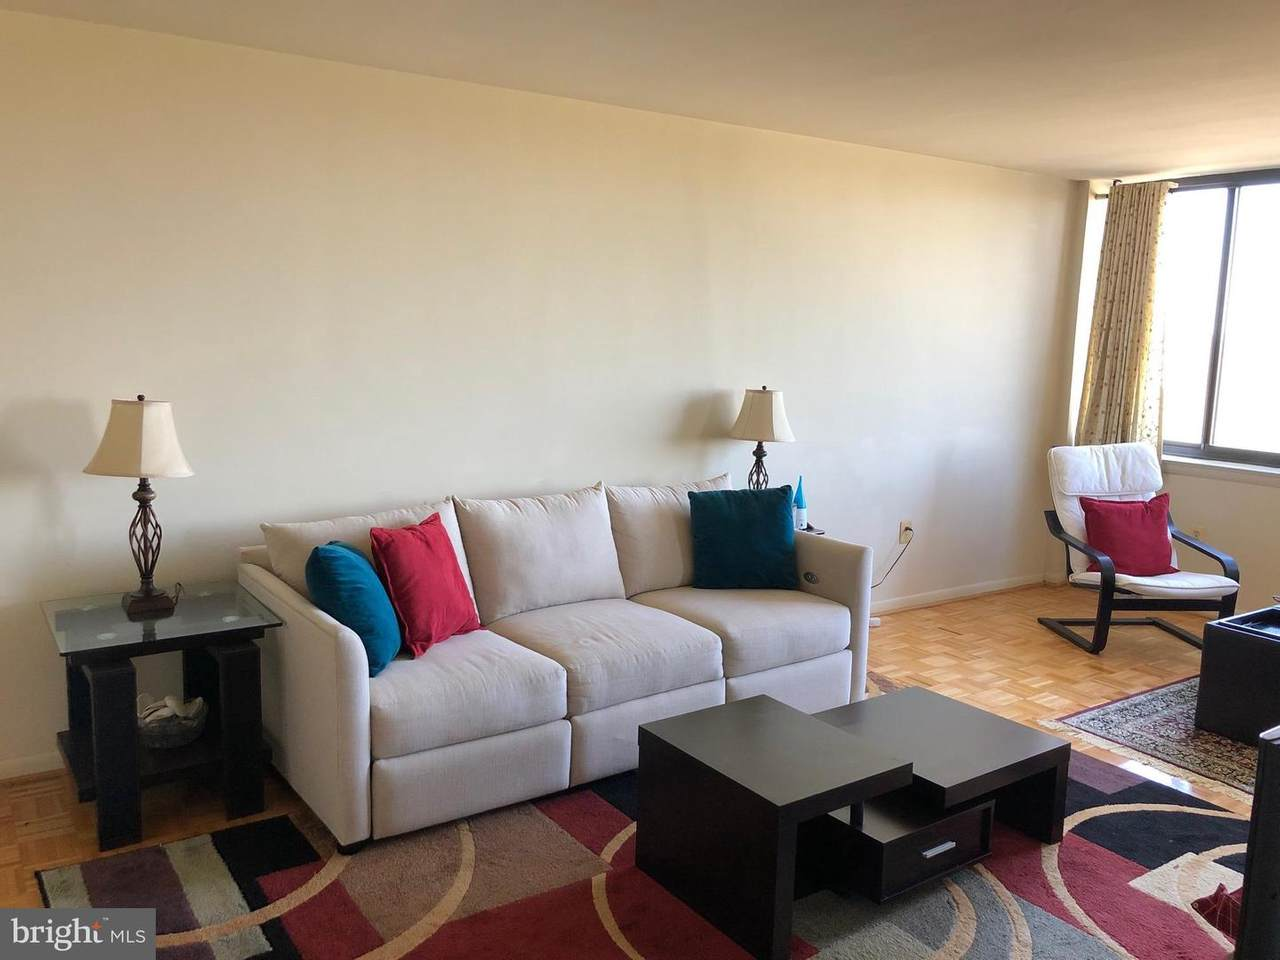 https://bt-photos.global.ssl.fastly.net/brightmls/1280_boomver_1_304536988240-2.jpg